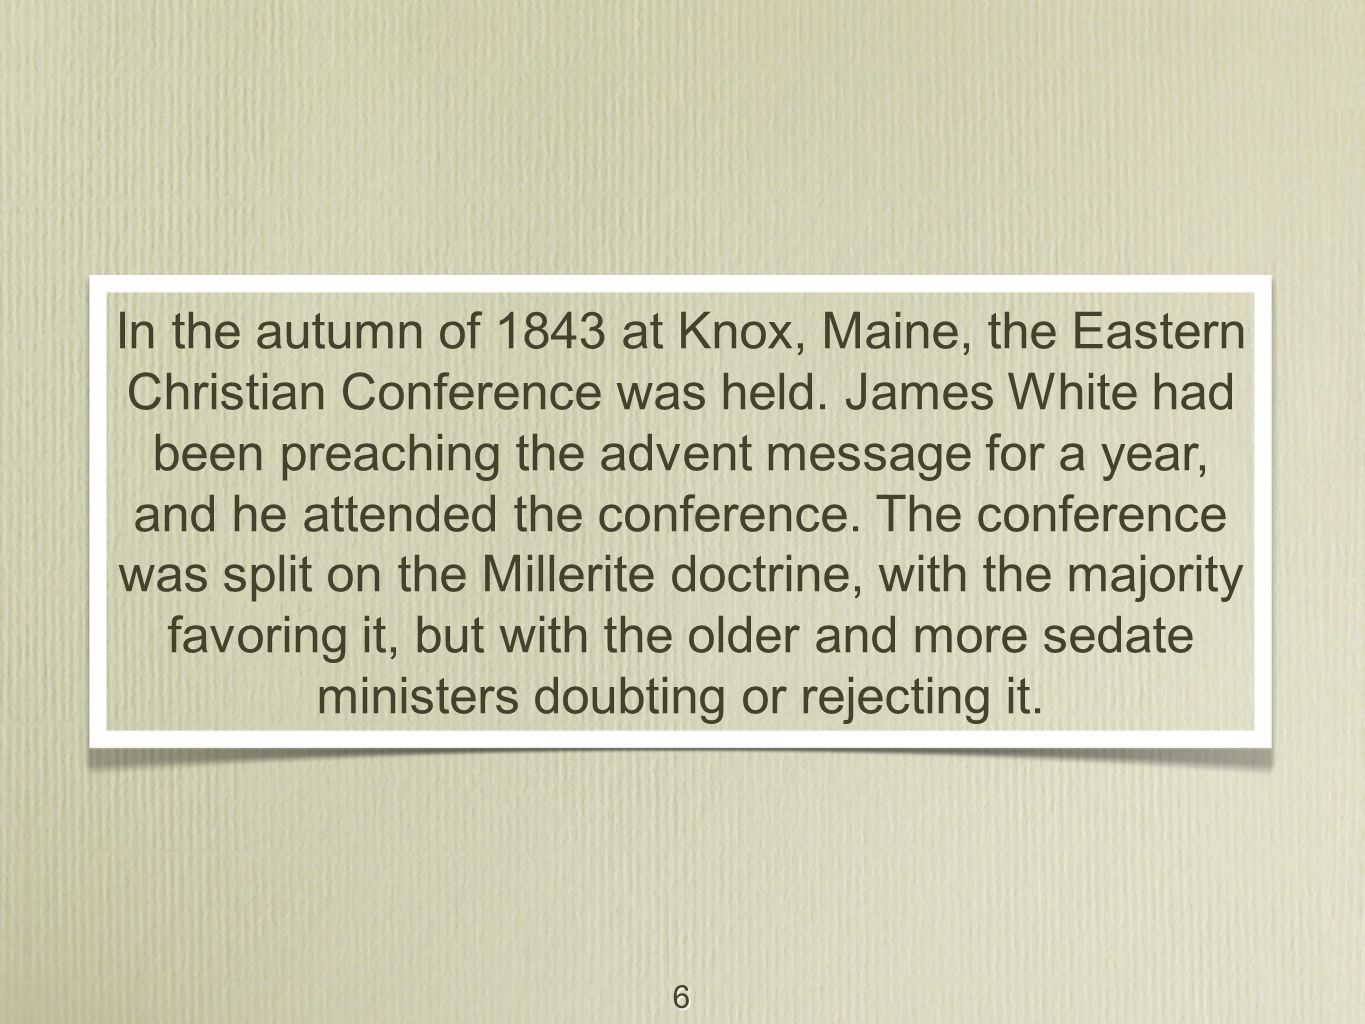 6 In the autumn of 1843 at Knox, Maine, the Eastern Christian Conference was held. James White had been preaching the advent message for a year, and h